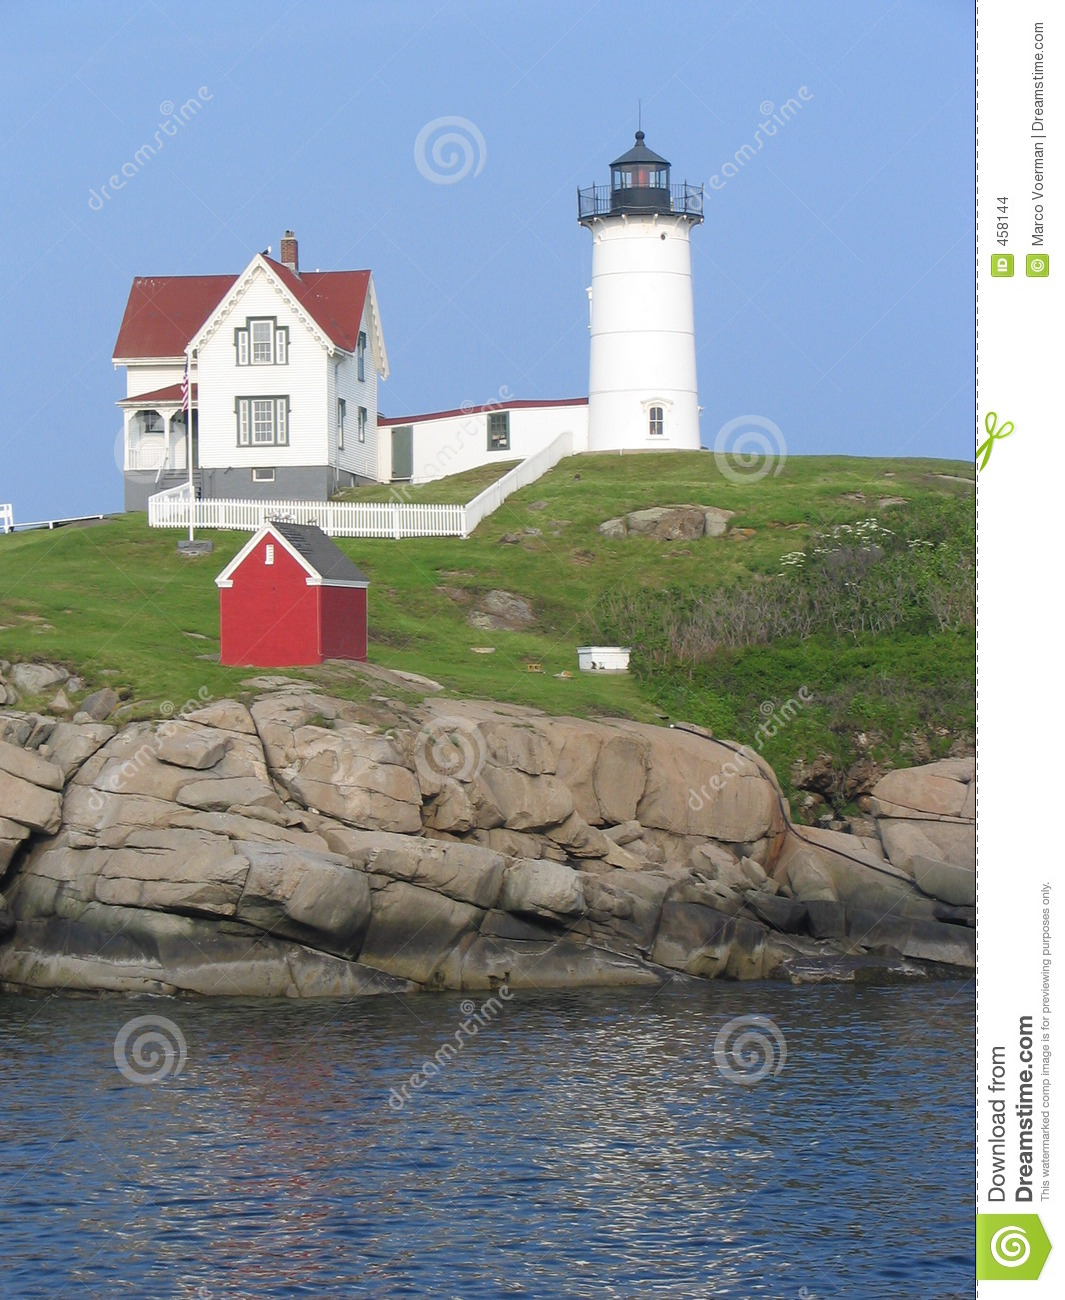 Download Nubble-1 stock photo. Image of lighthouse, navigation, ocean - 458144